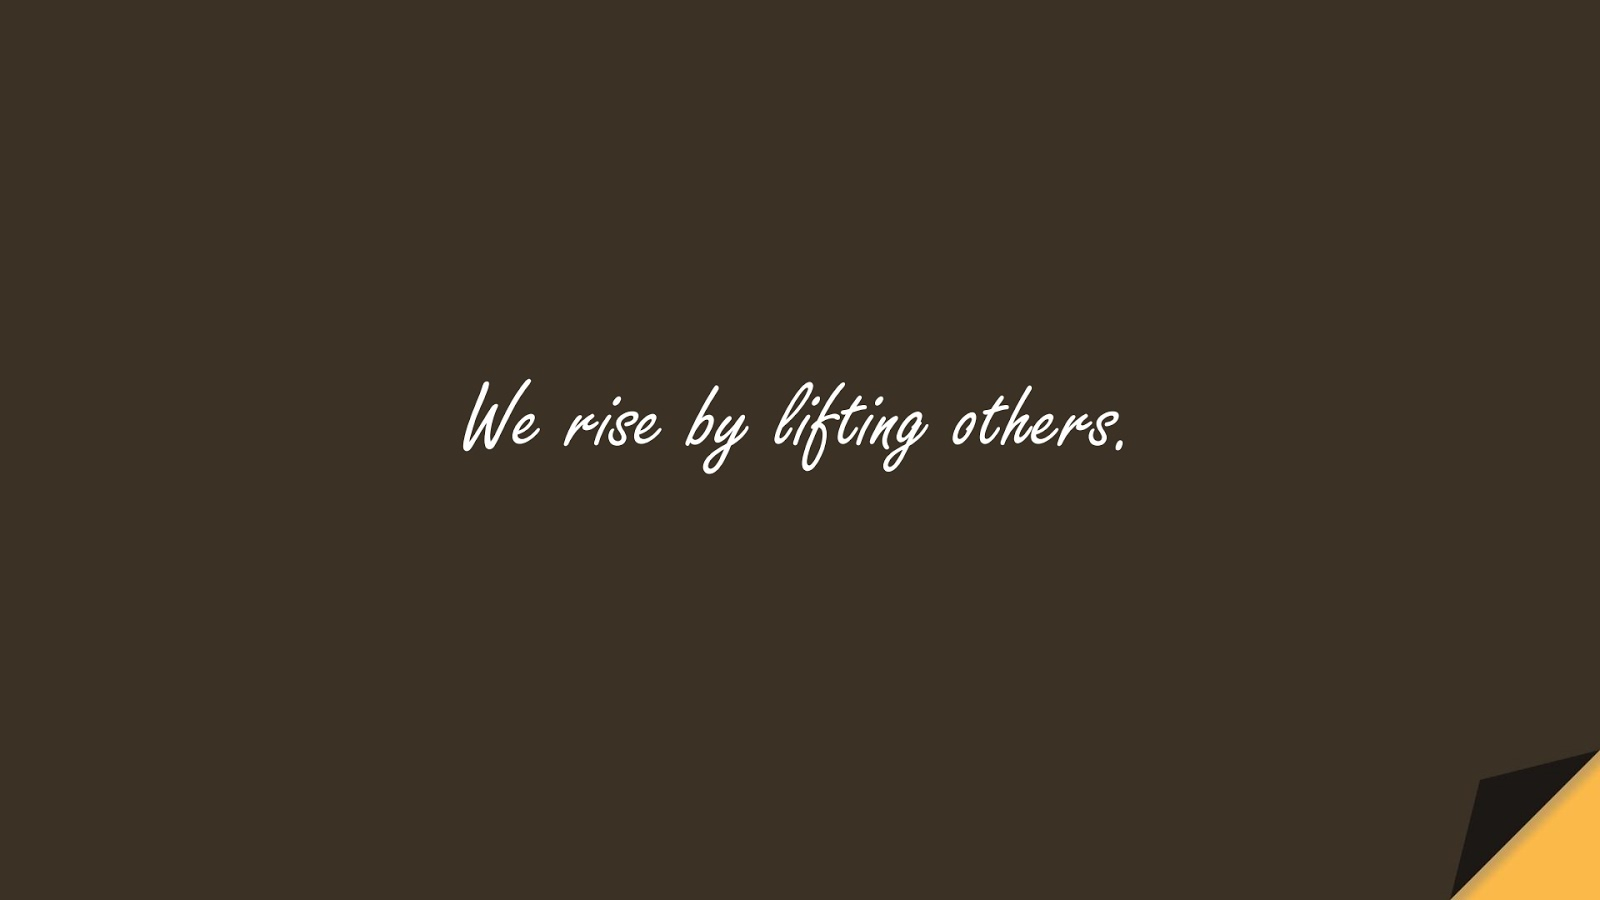 We rise by lifting others.FALSE